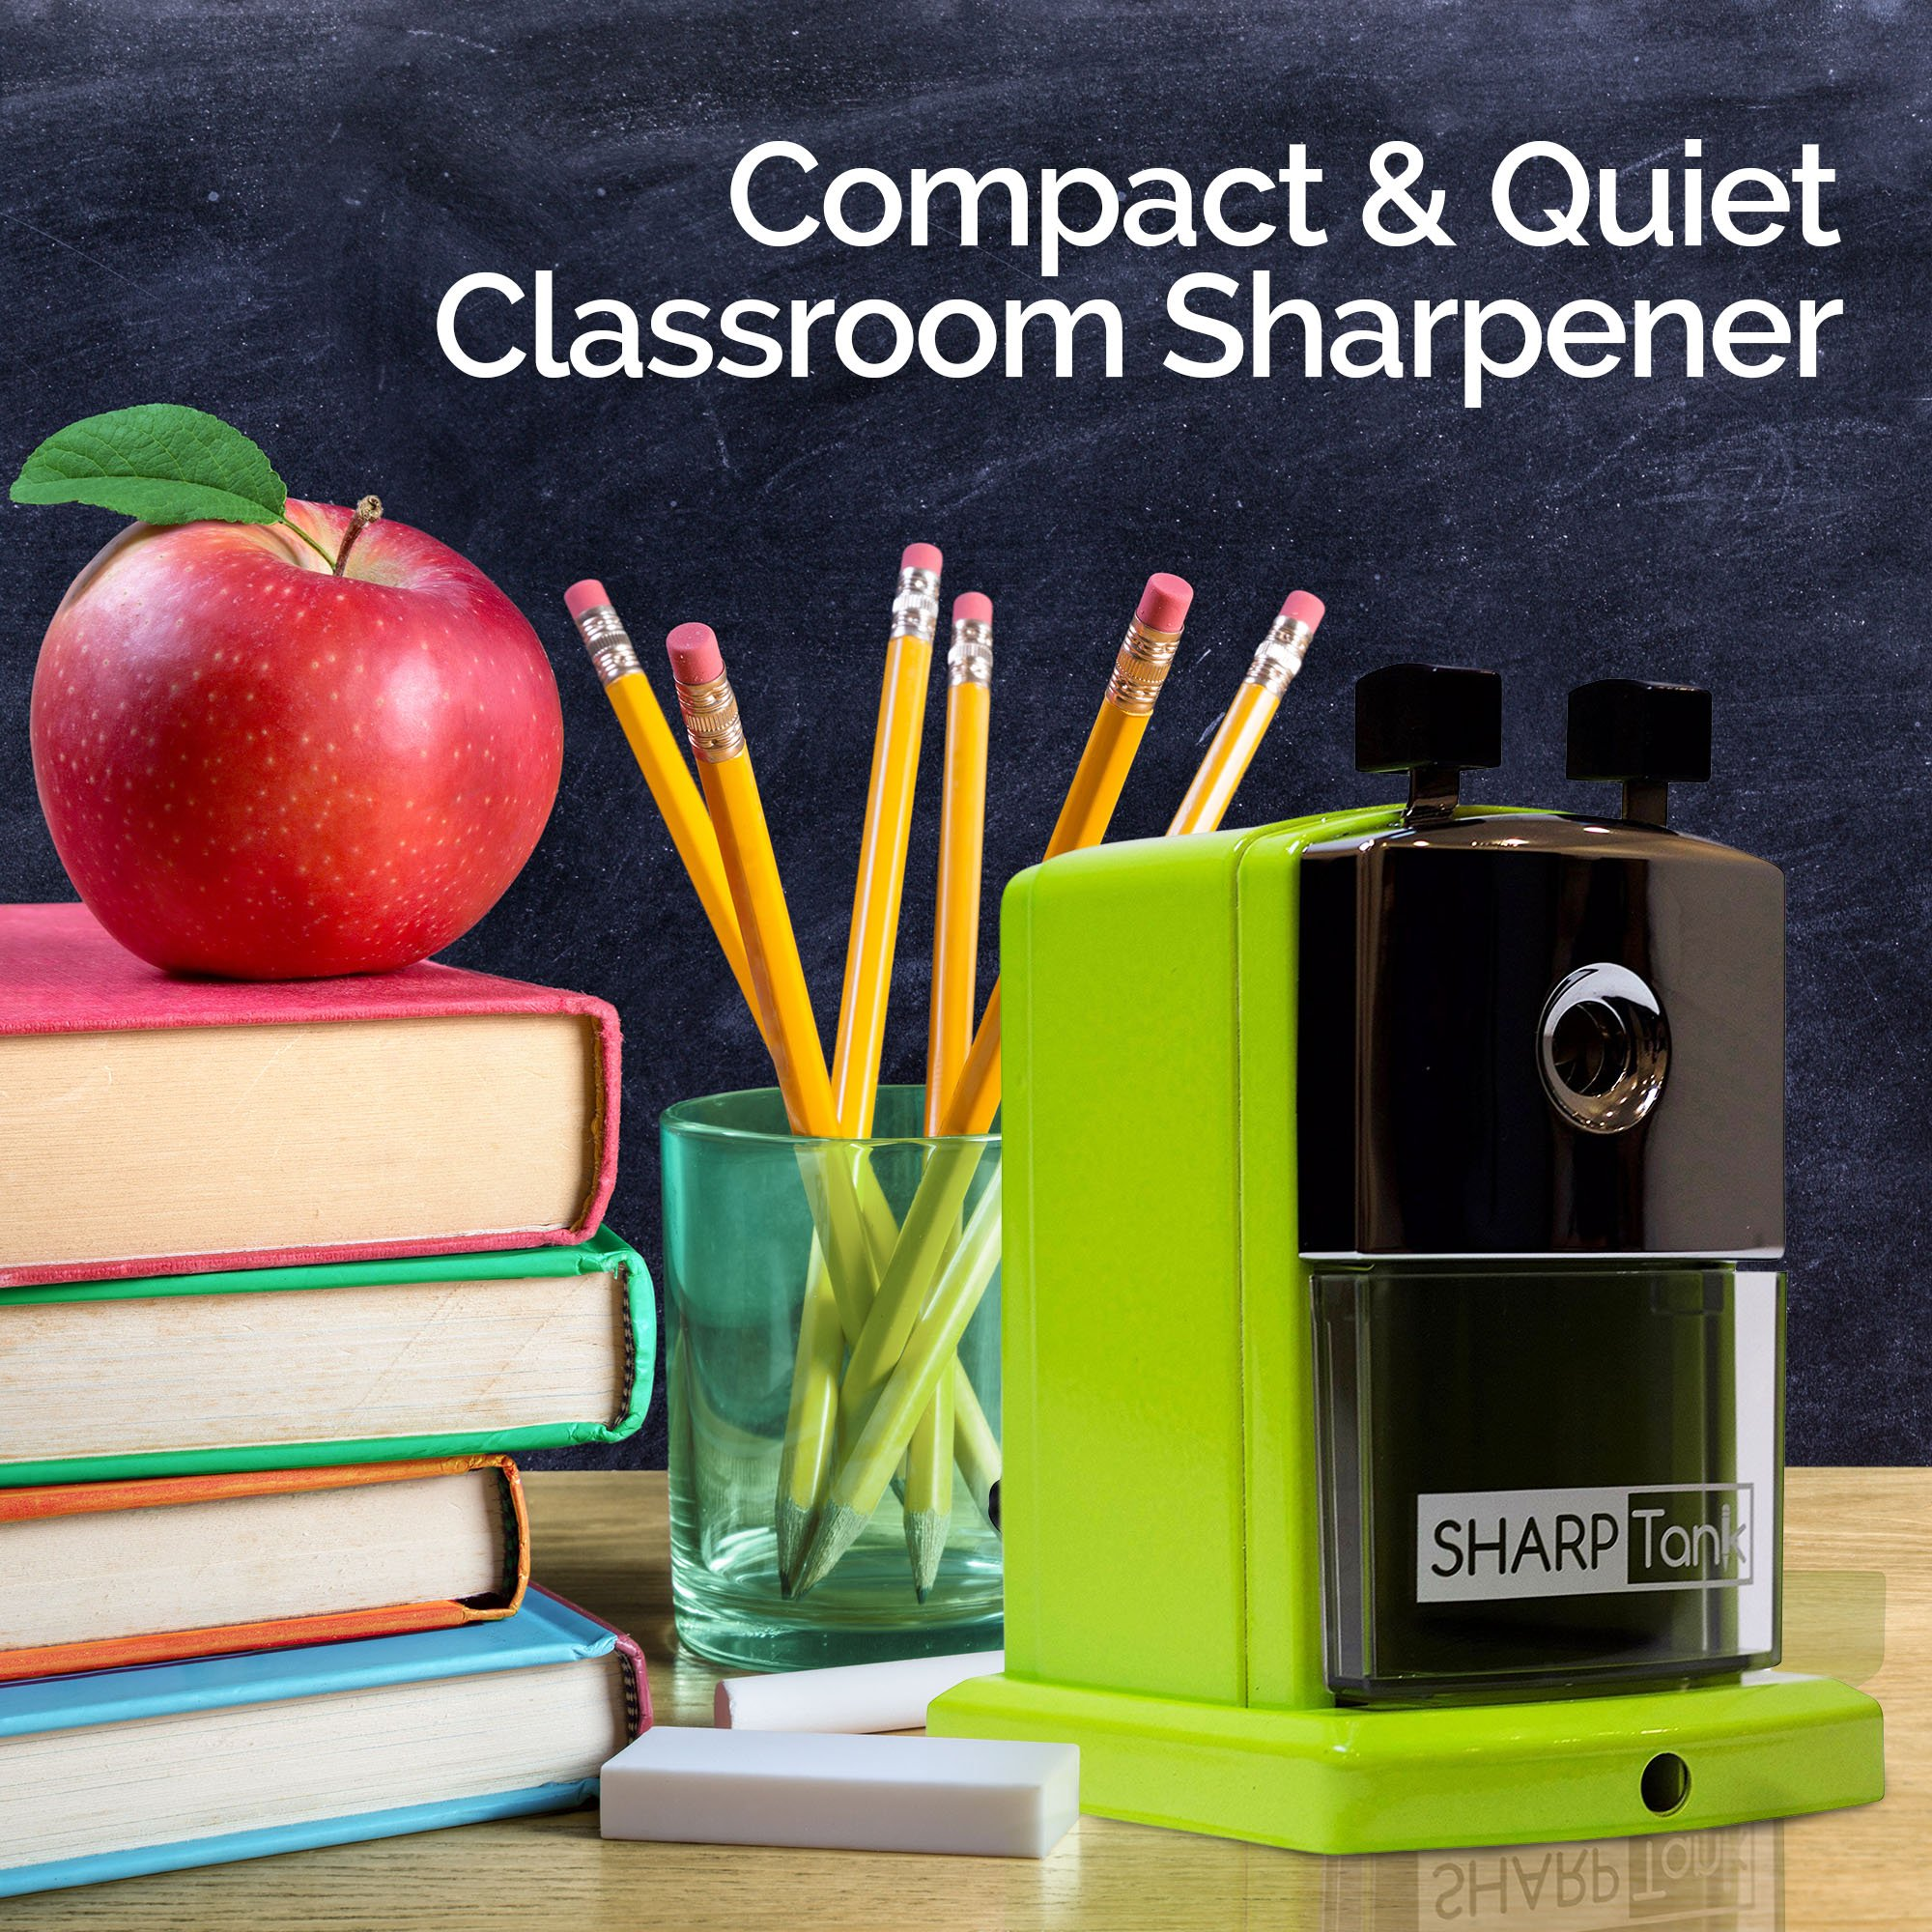 SharpTank - Portable Pencil Sharpener (Key Lime Green) - Compact & Quiet Classroom Sharpener That Gets Straight to The Point! by SHARP TANK (Image #5)